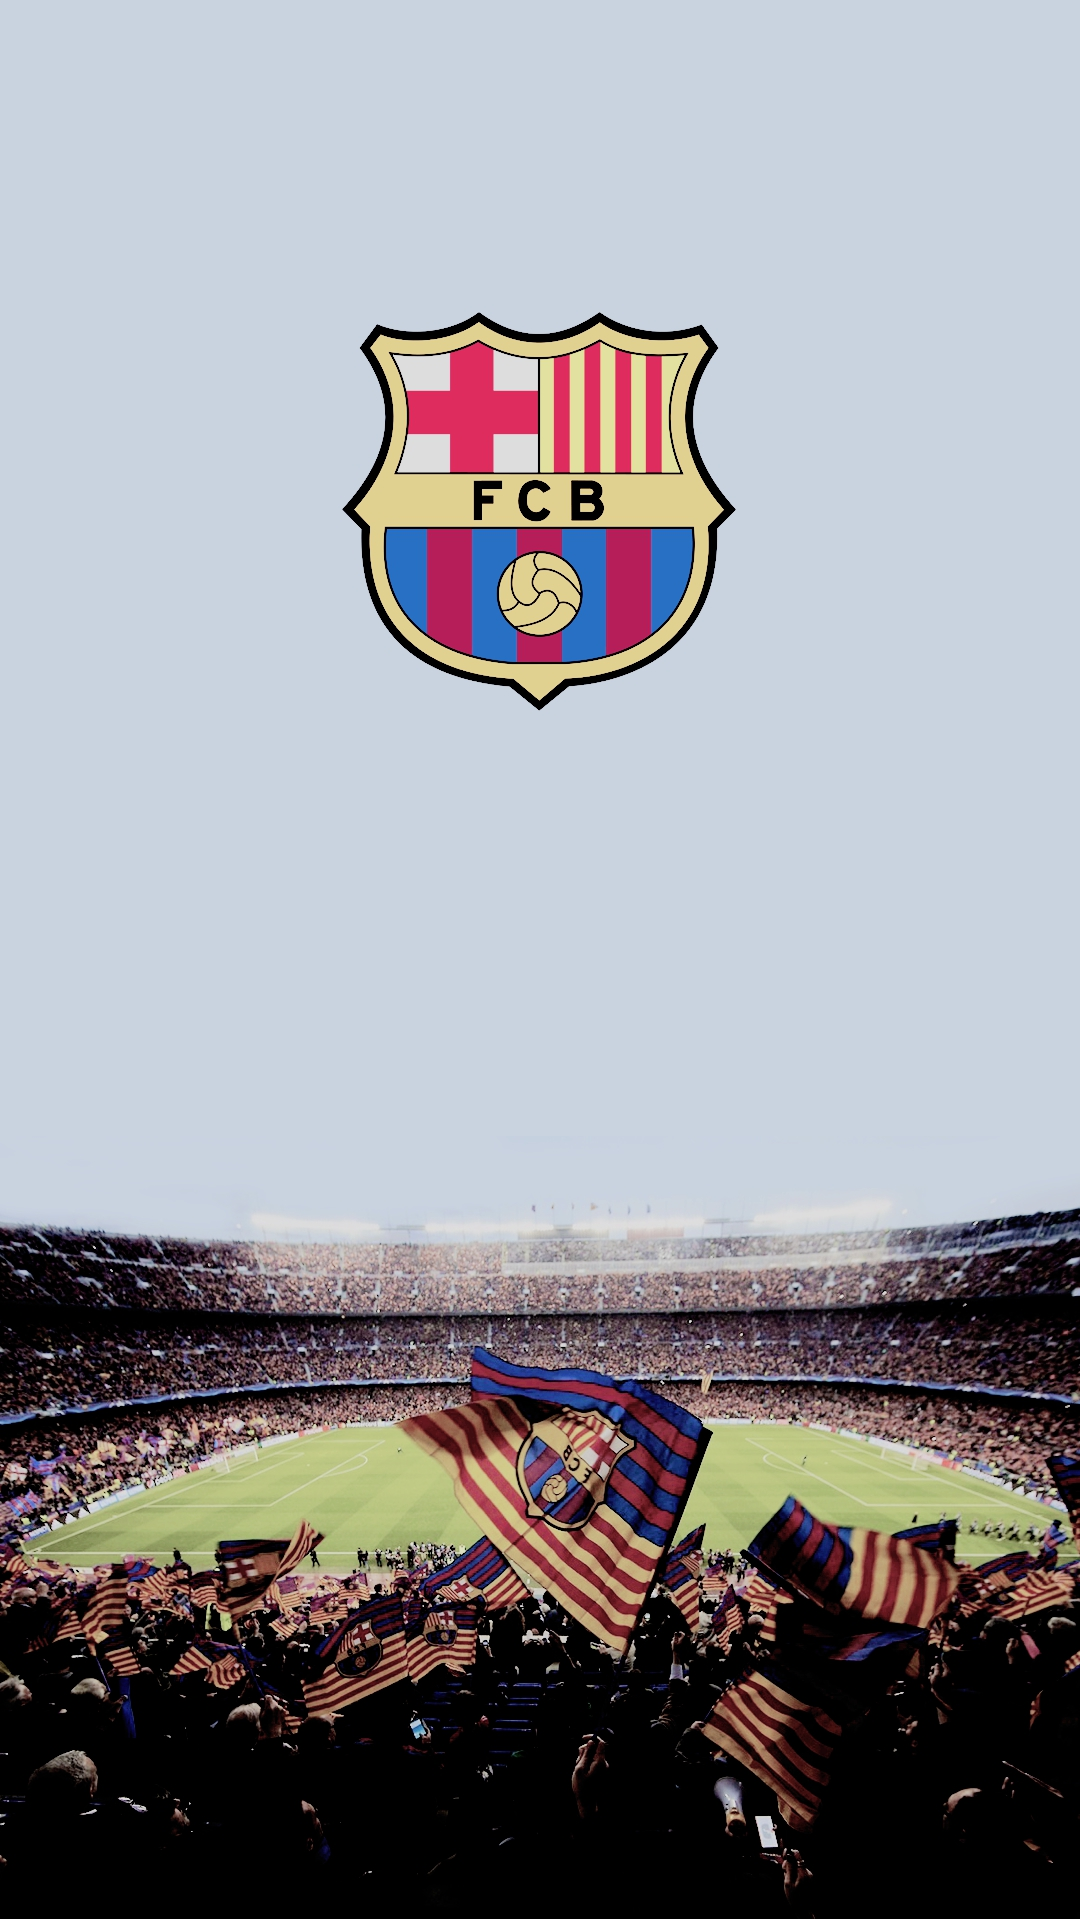 Real Madrid Wallpaper Hd Fc Barcelona Iphone Wallpaper Iphone Wallpapers